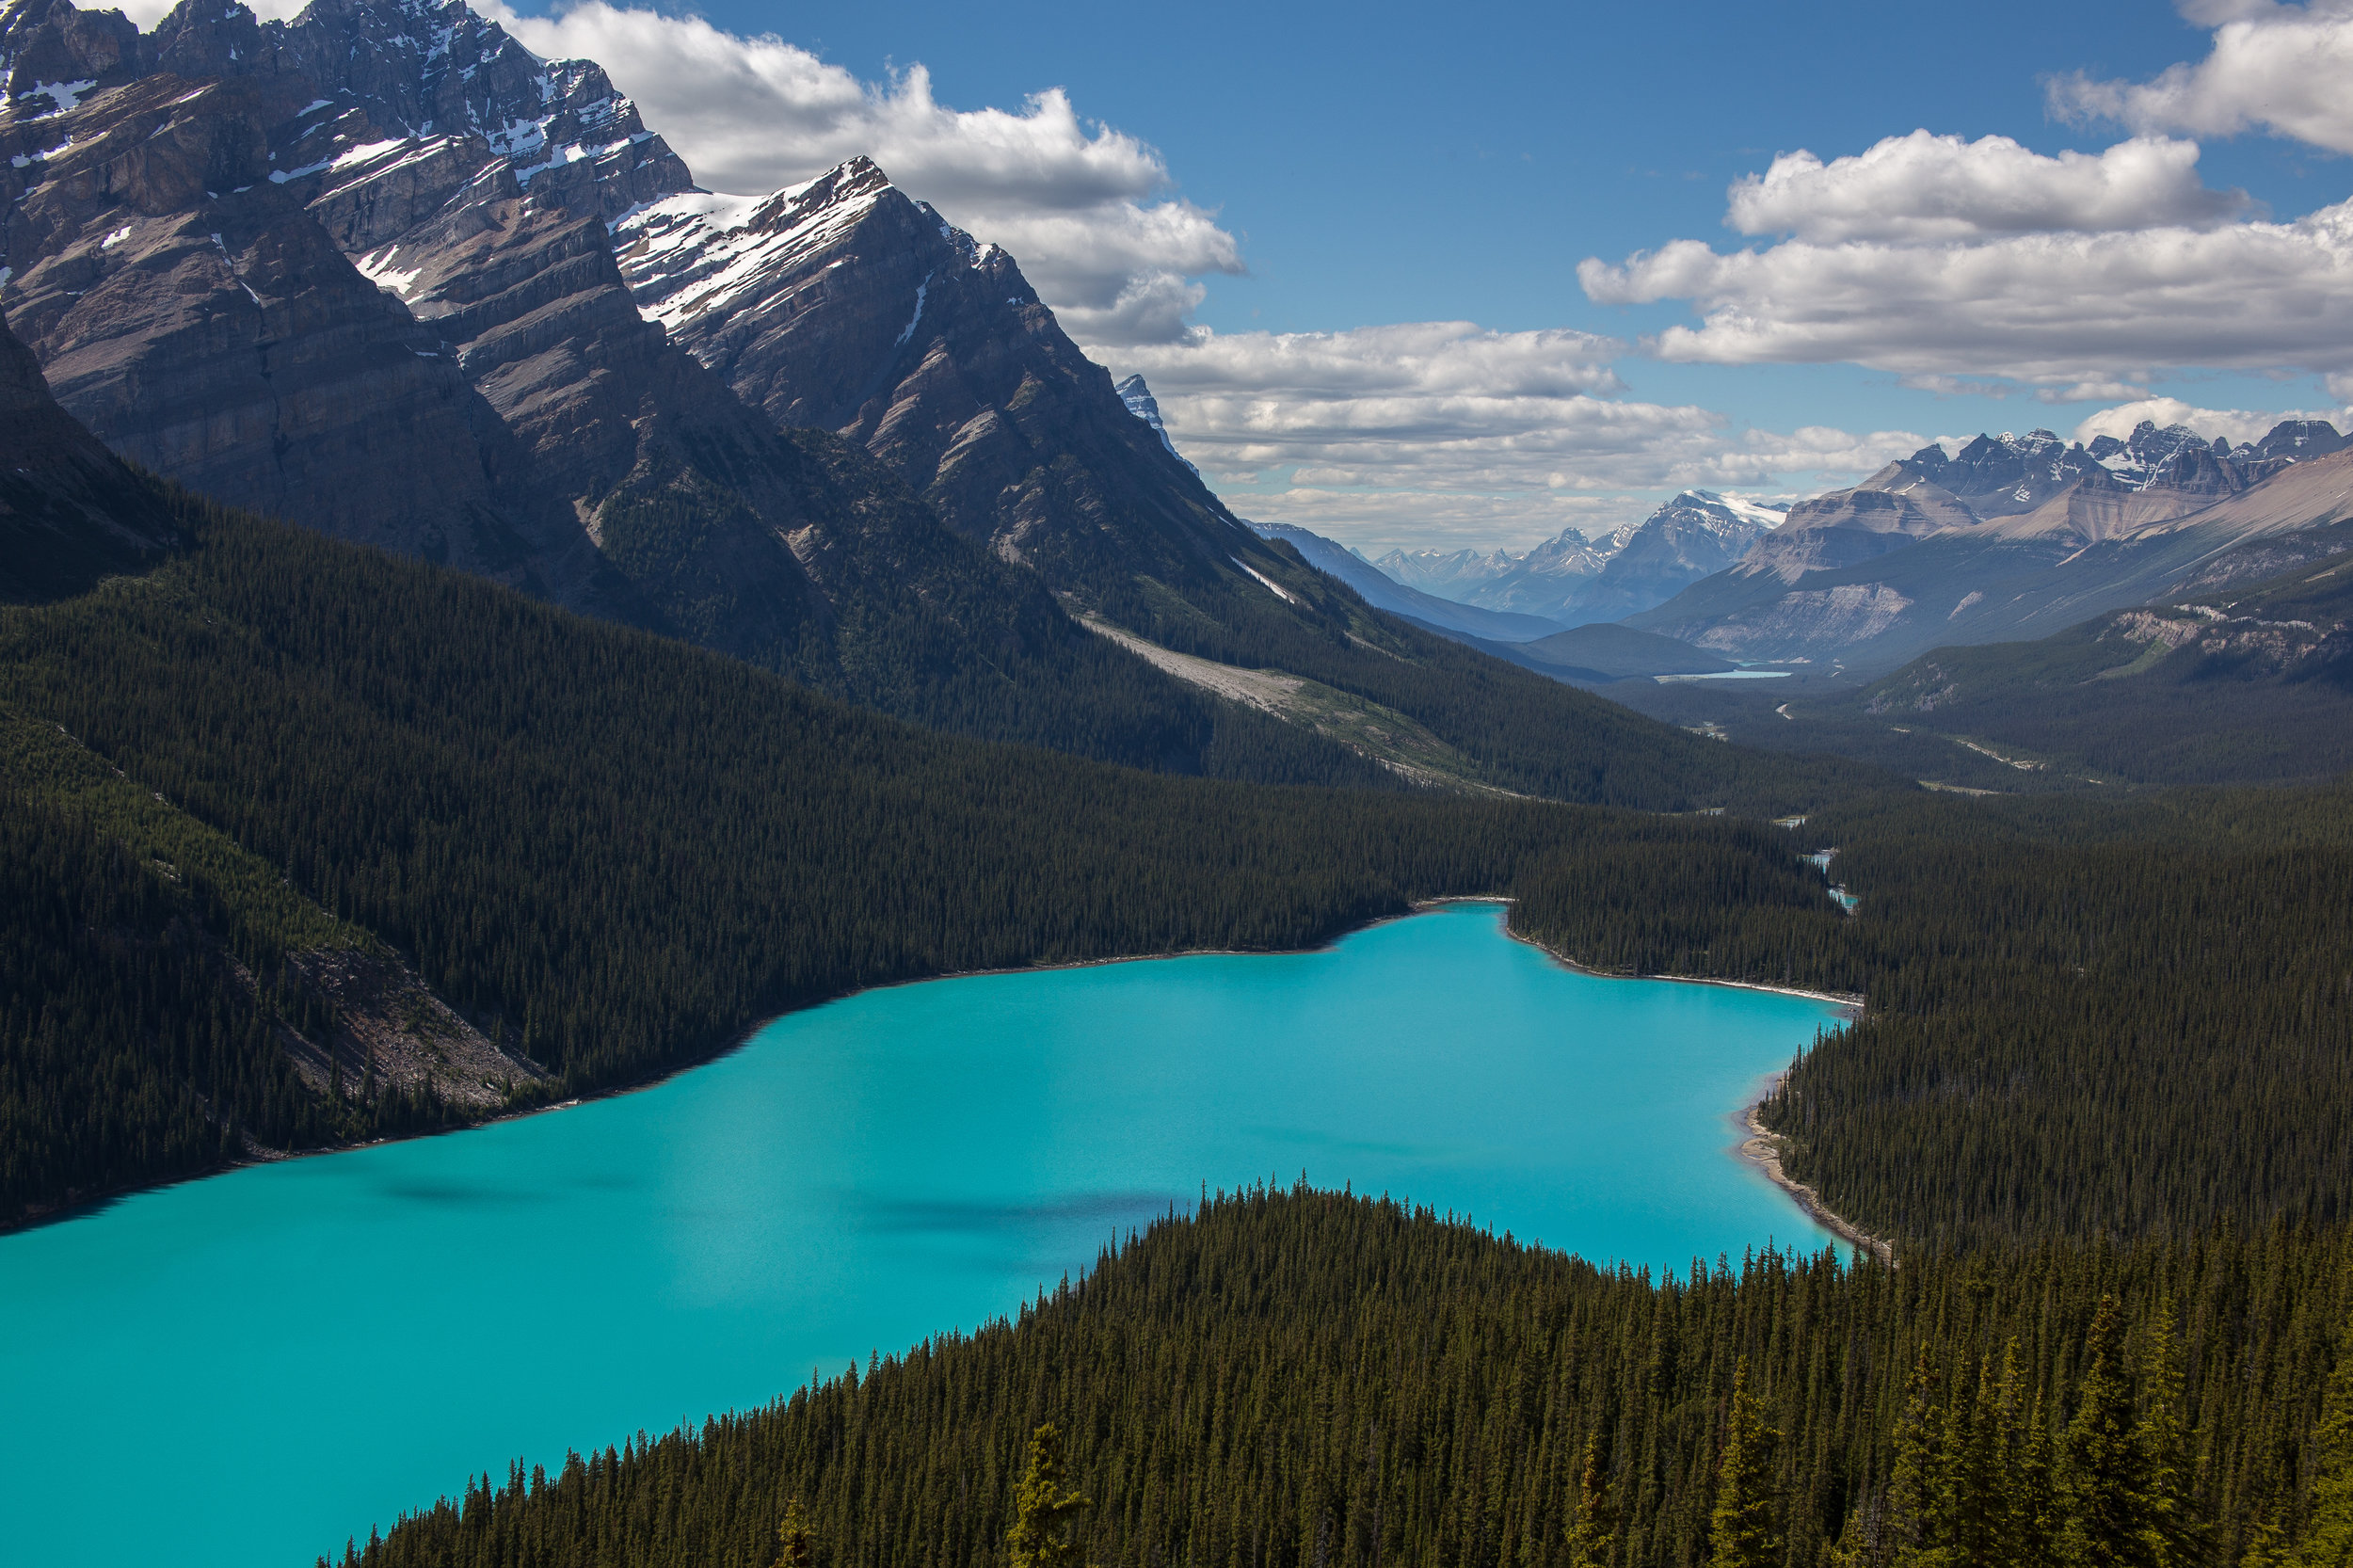 Peyto Lake  - Located just 6km North of Simpson's Num-Ti-Jah Lodge on the Icefields Parkway, the viewpoint provides a vast view of Beautiful Peyto Lake and miles of valley beyond. This spot is a favourite for professional photographers and sightseers alike.